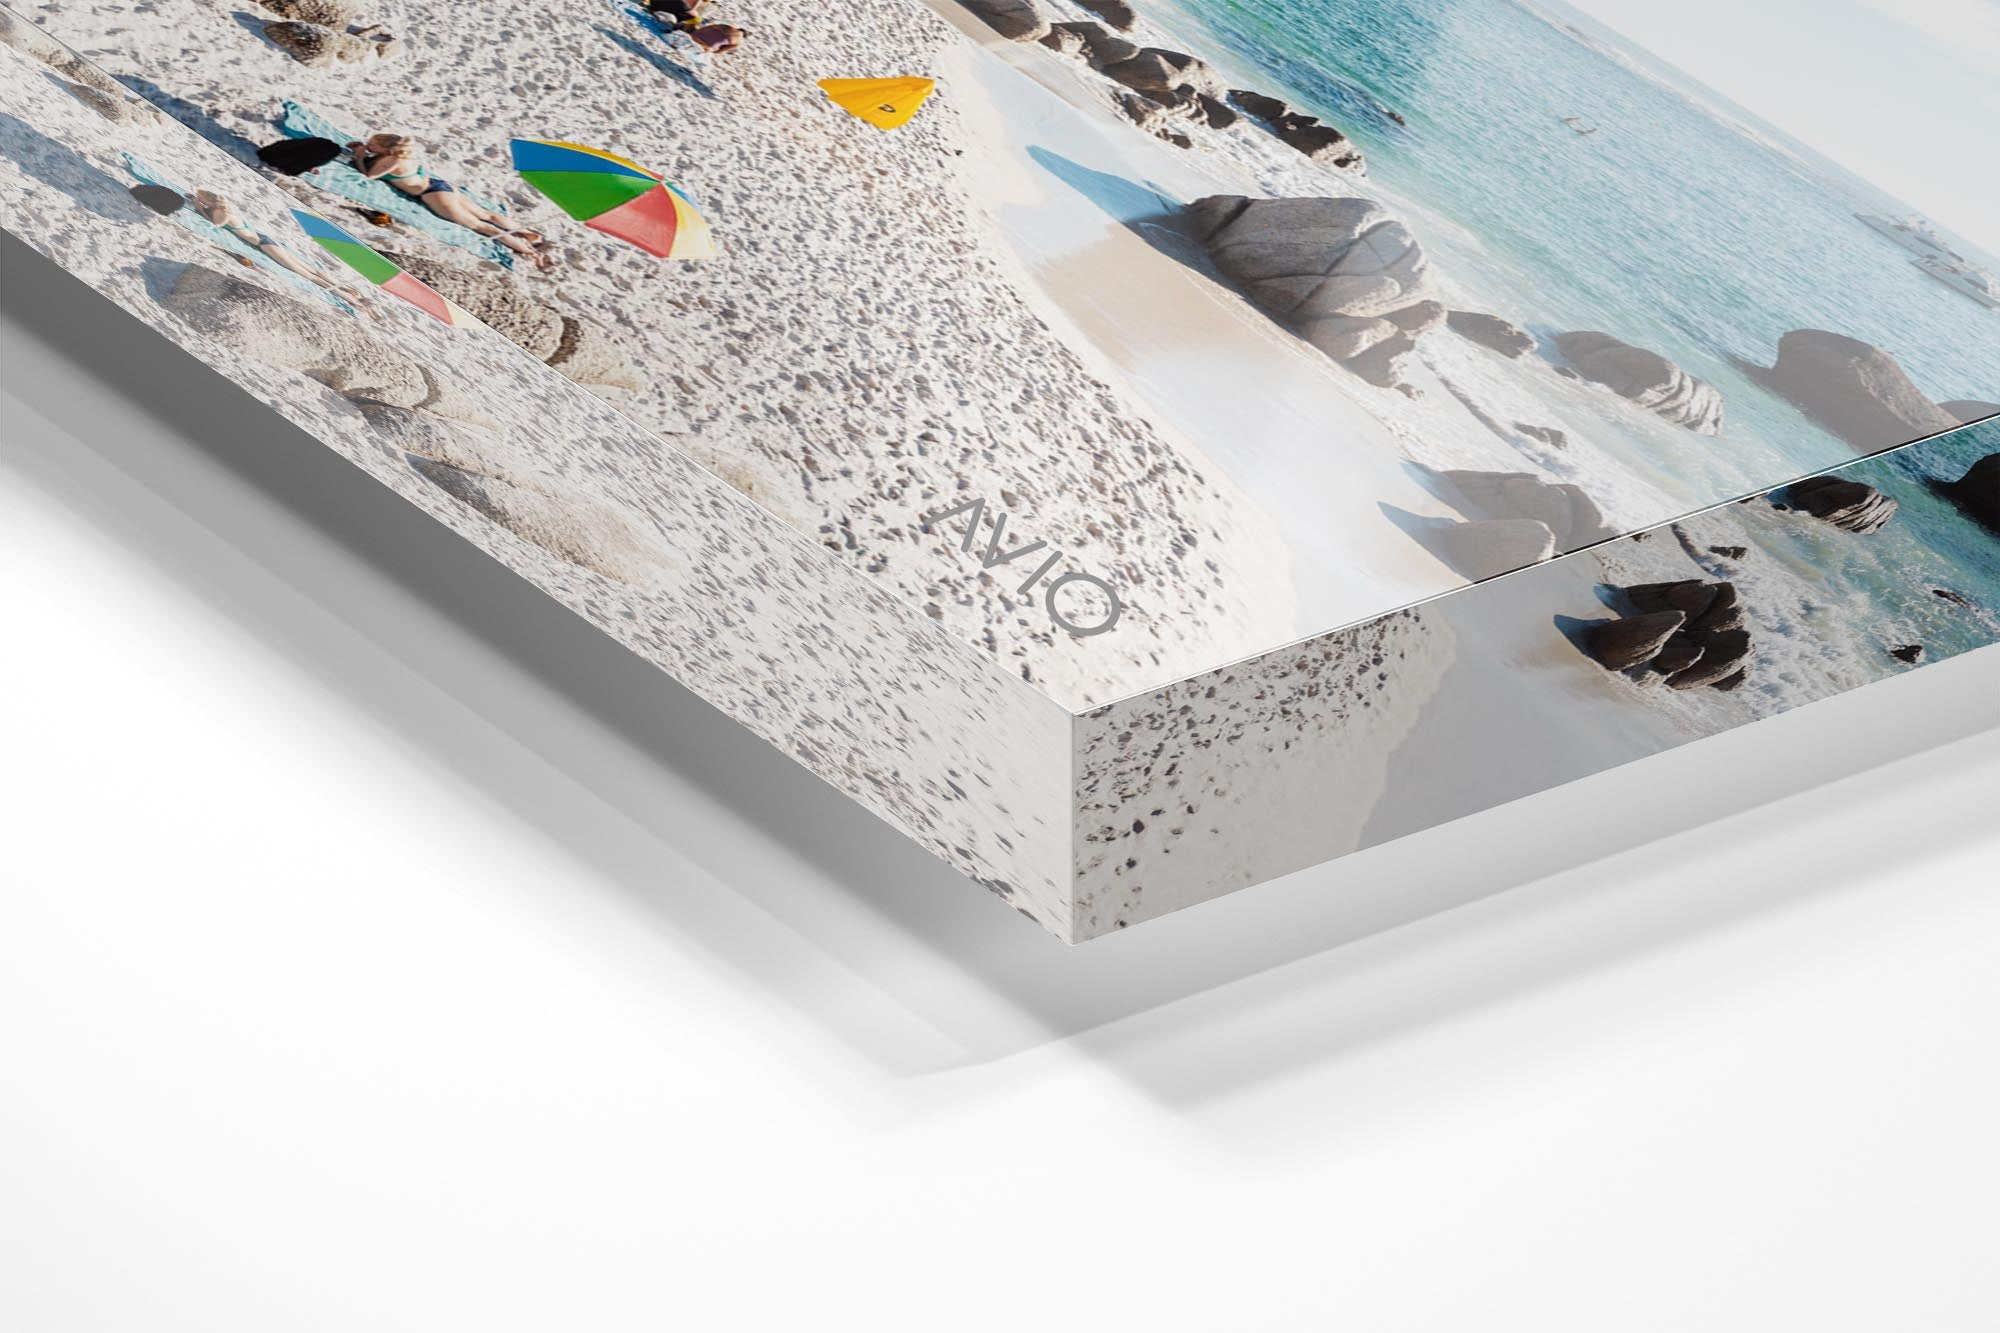 People tanning along the coast of Clifton in Cape Town in an acrylic/perspex frame